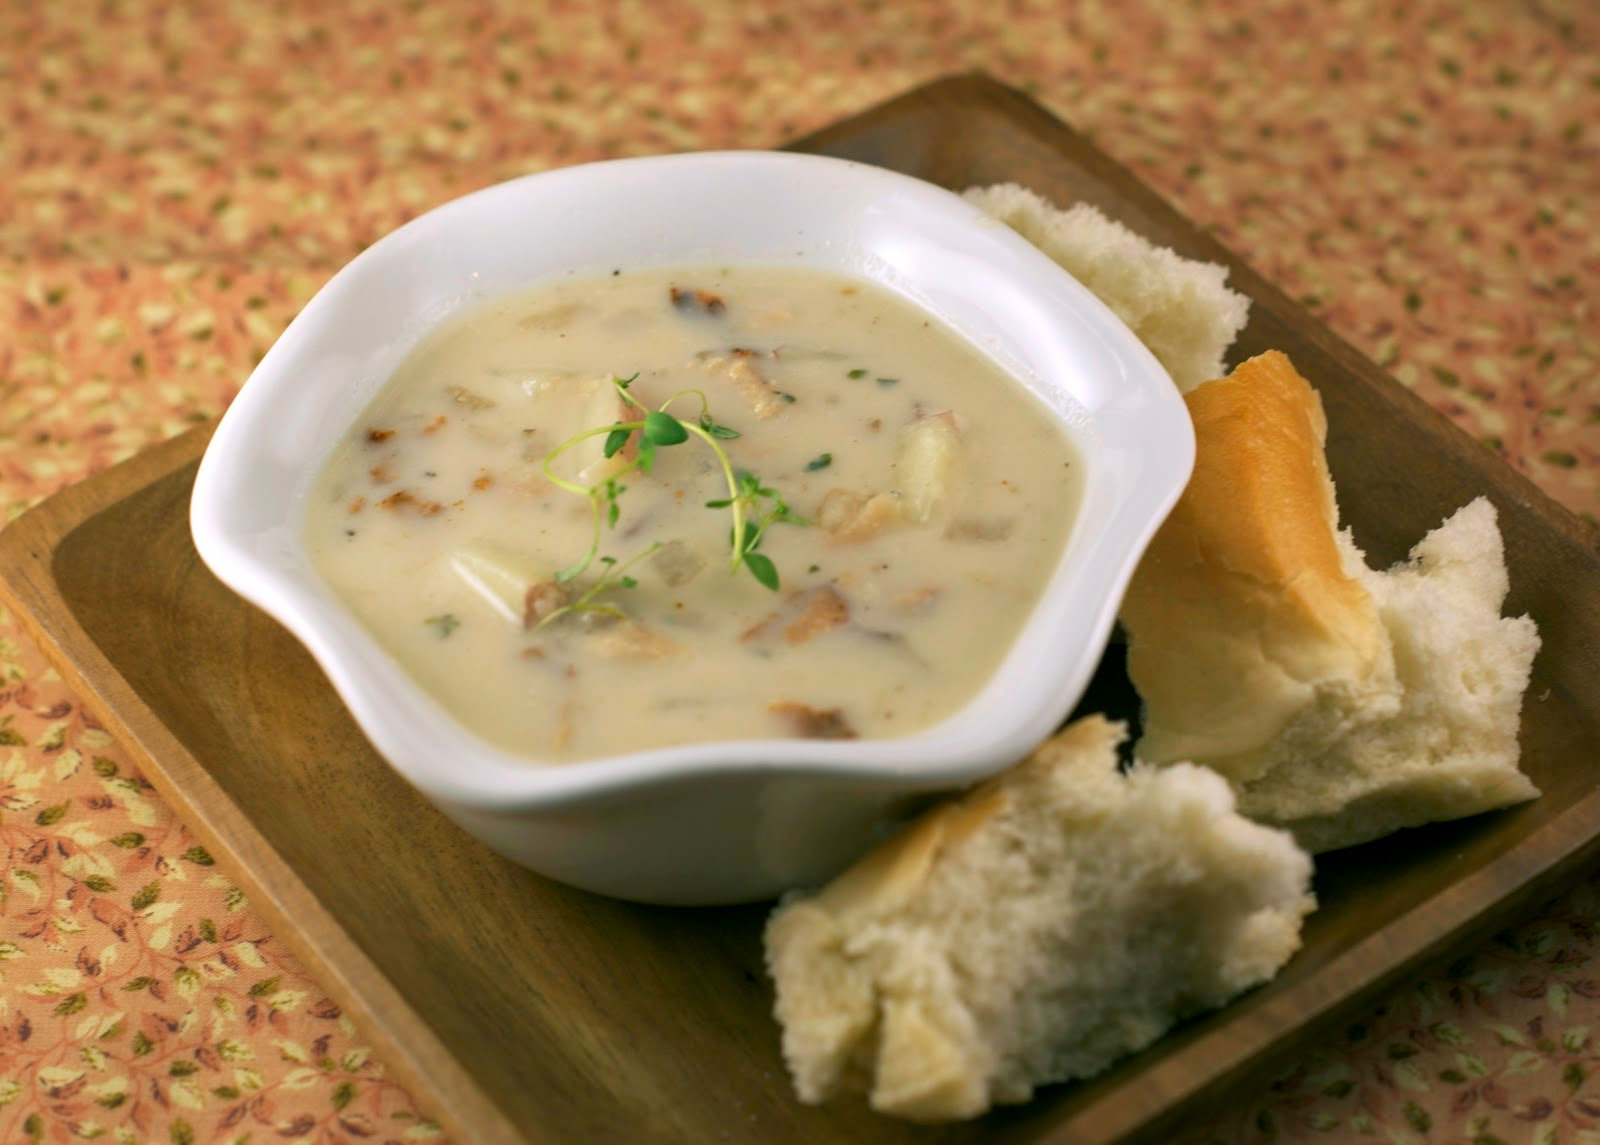 http://www.dishmaps.com/new-england-clam-chowder/8540